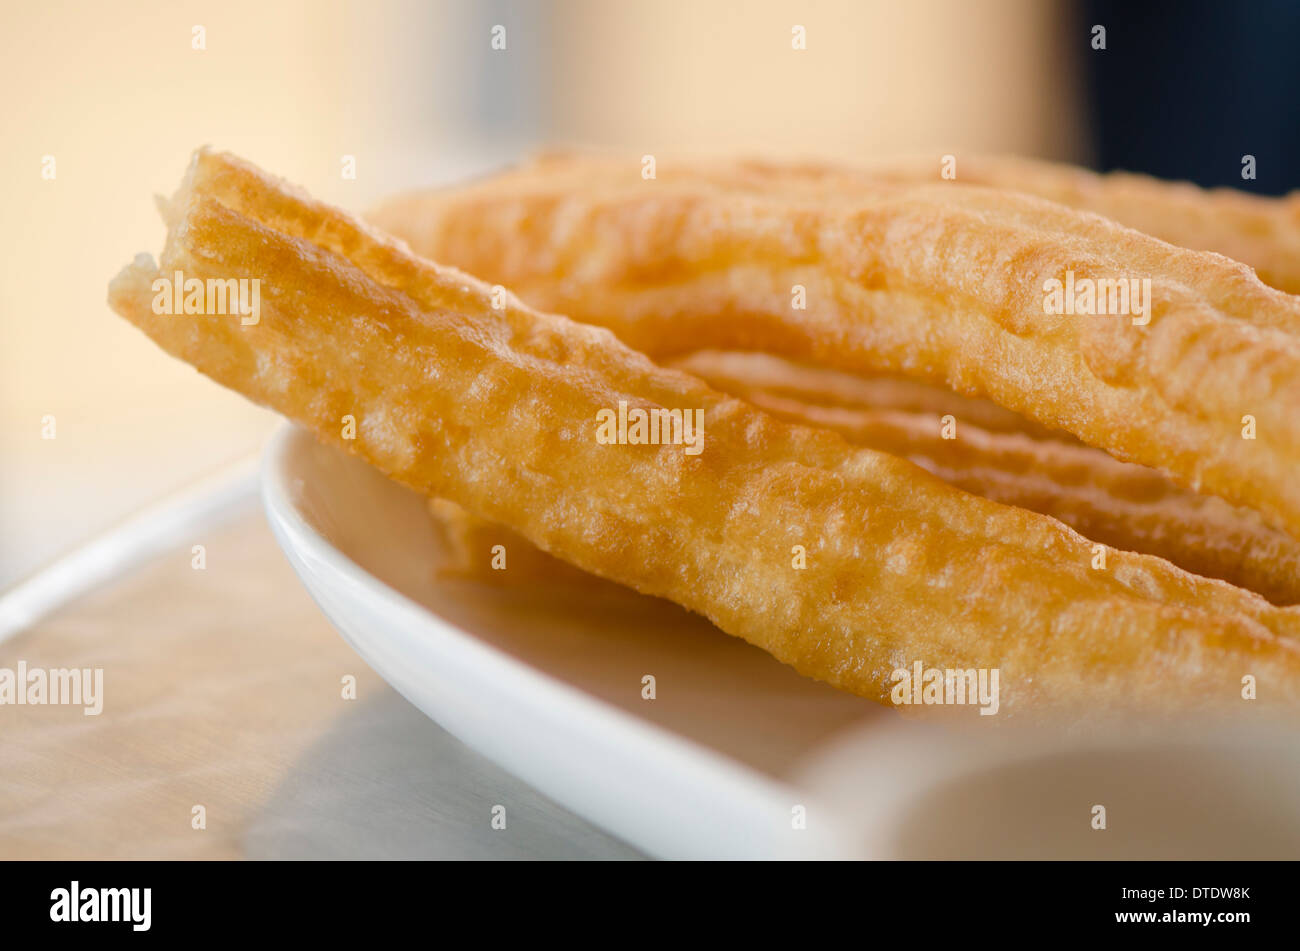 close-up-of-some-churros-porra-on-a-whit